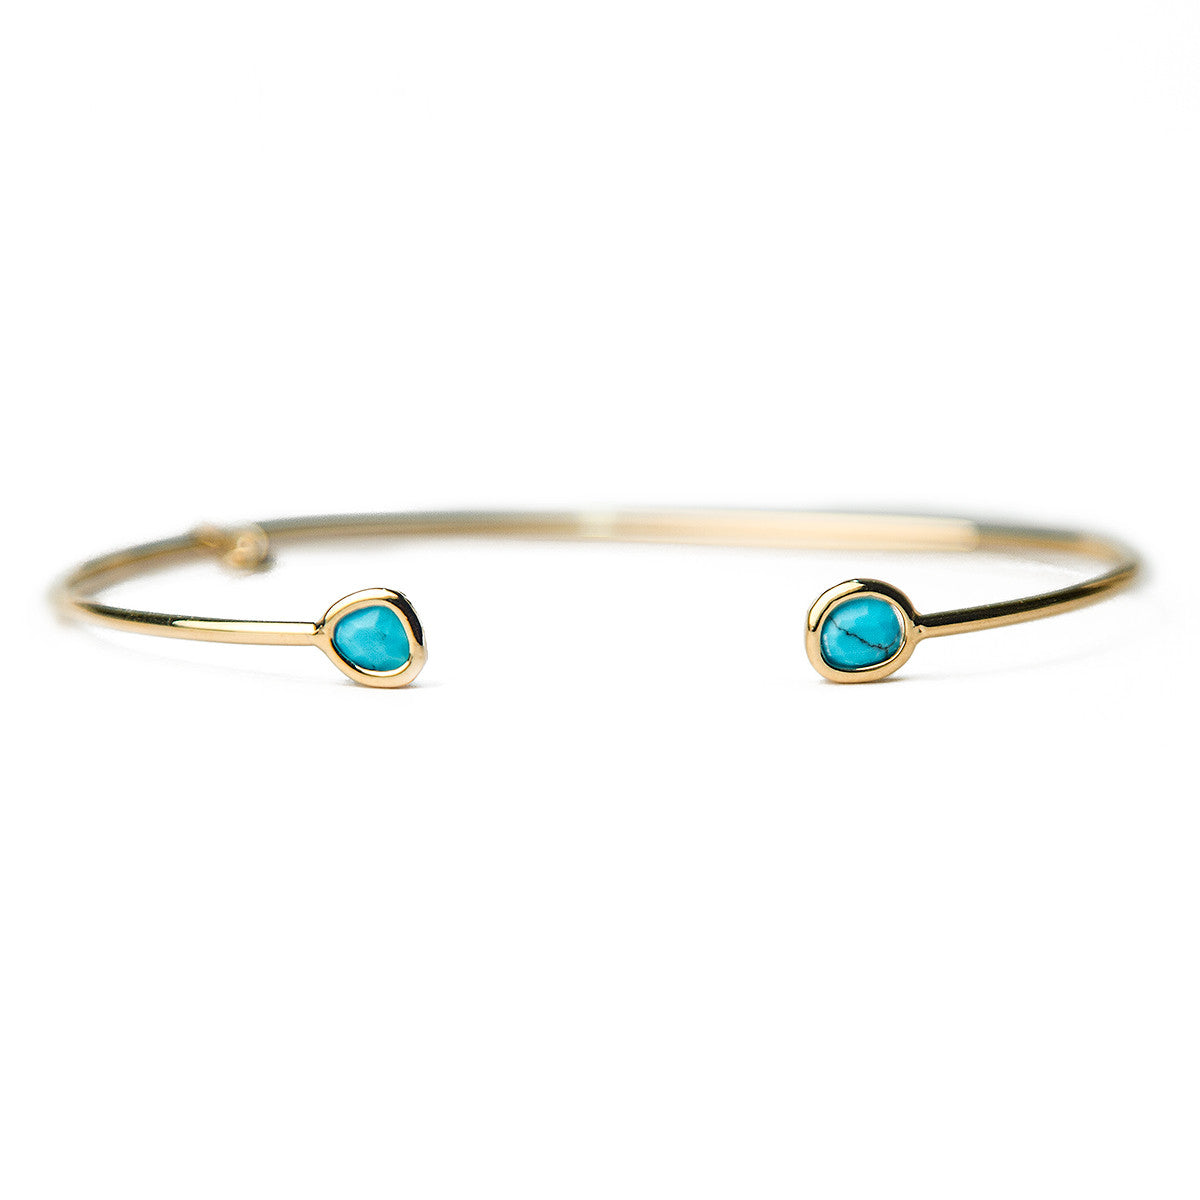 MINI GLASS CUFF BRACELET